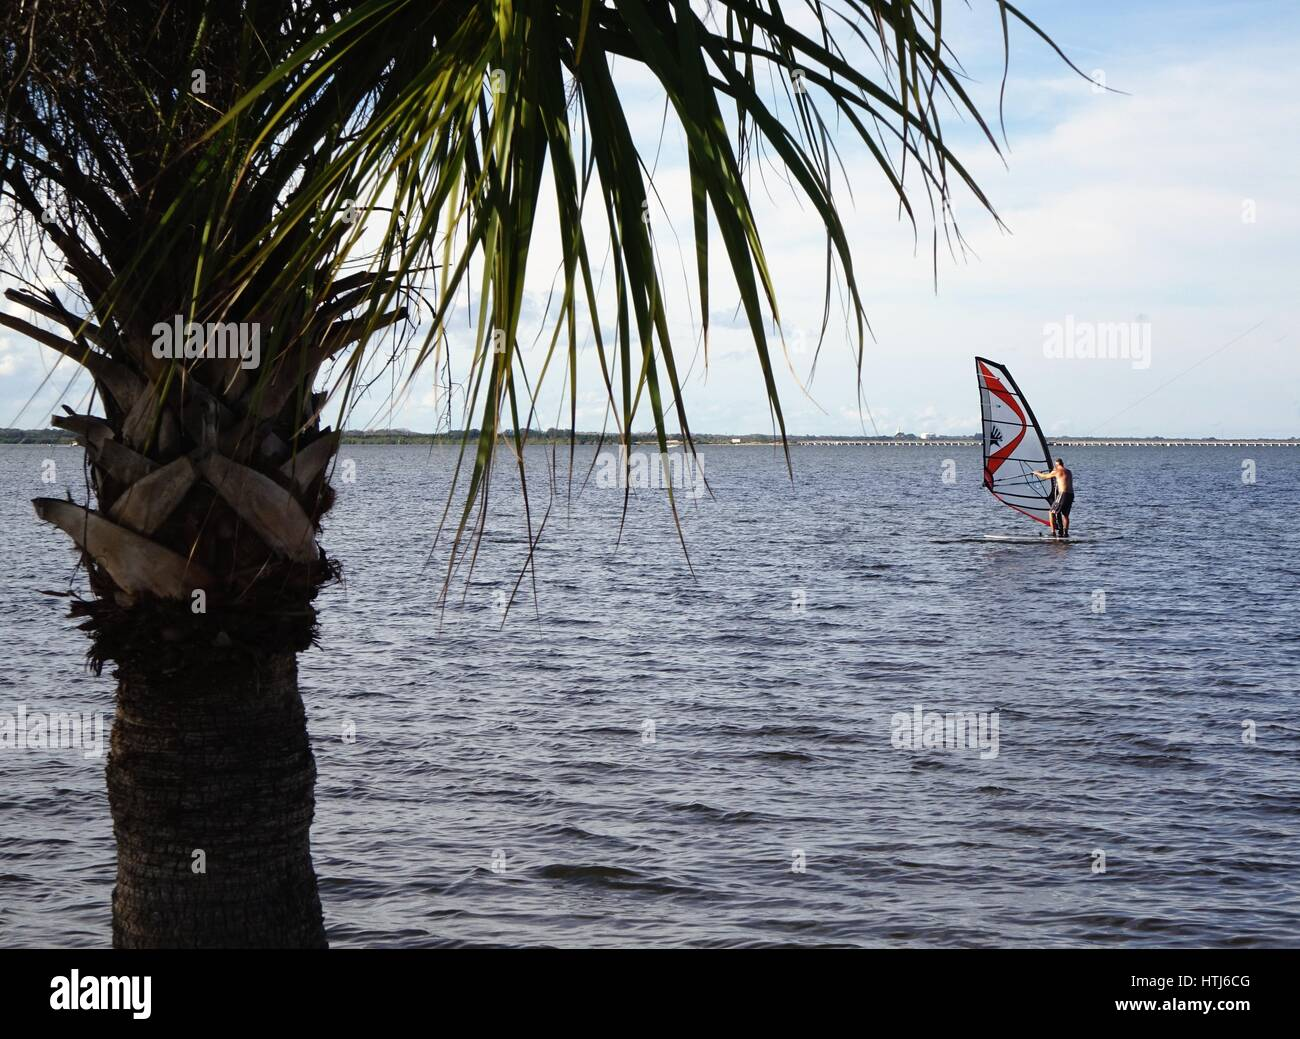 Wind surfing in the Indian River, Florida - Stock Image